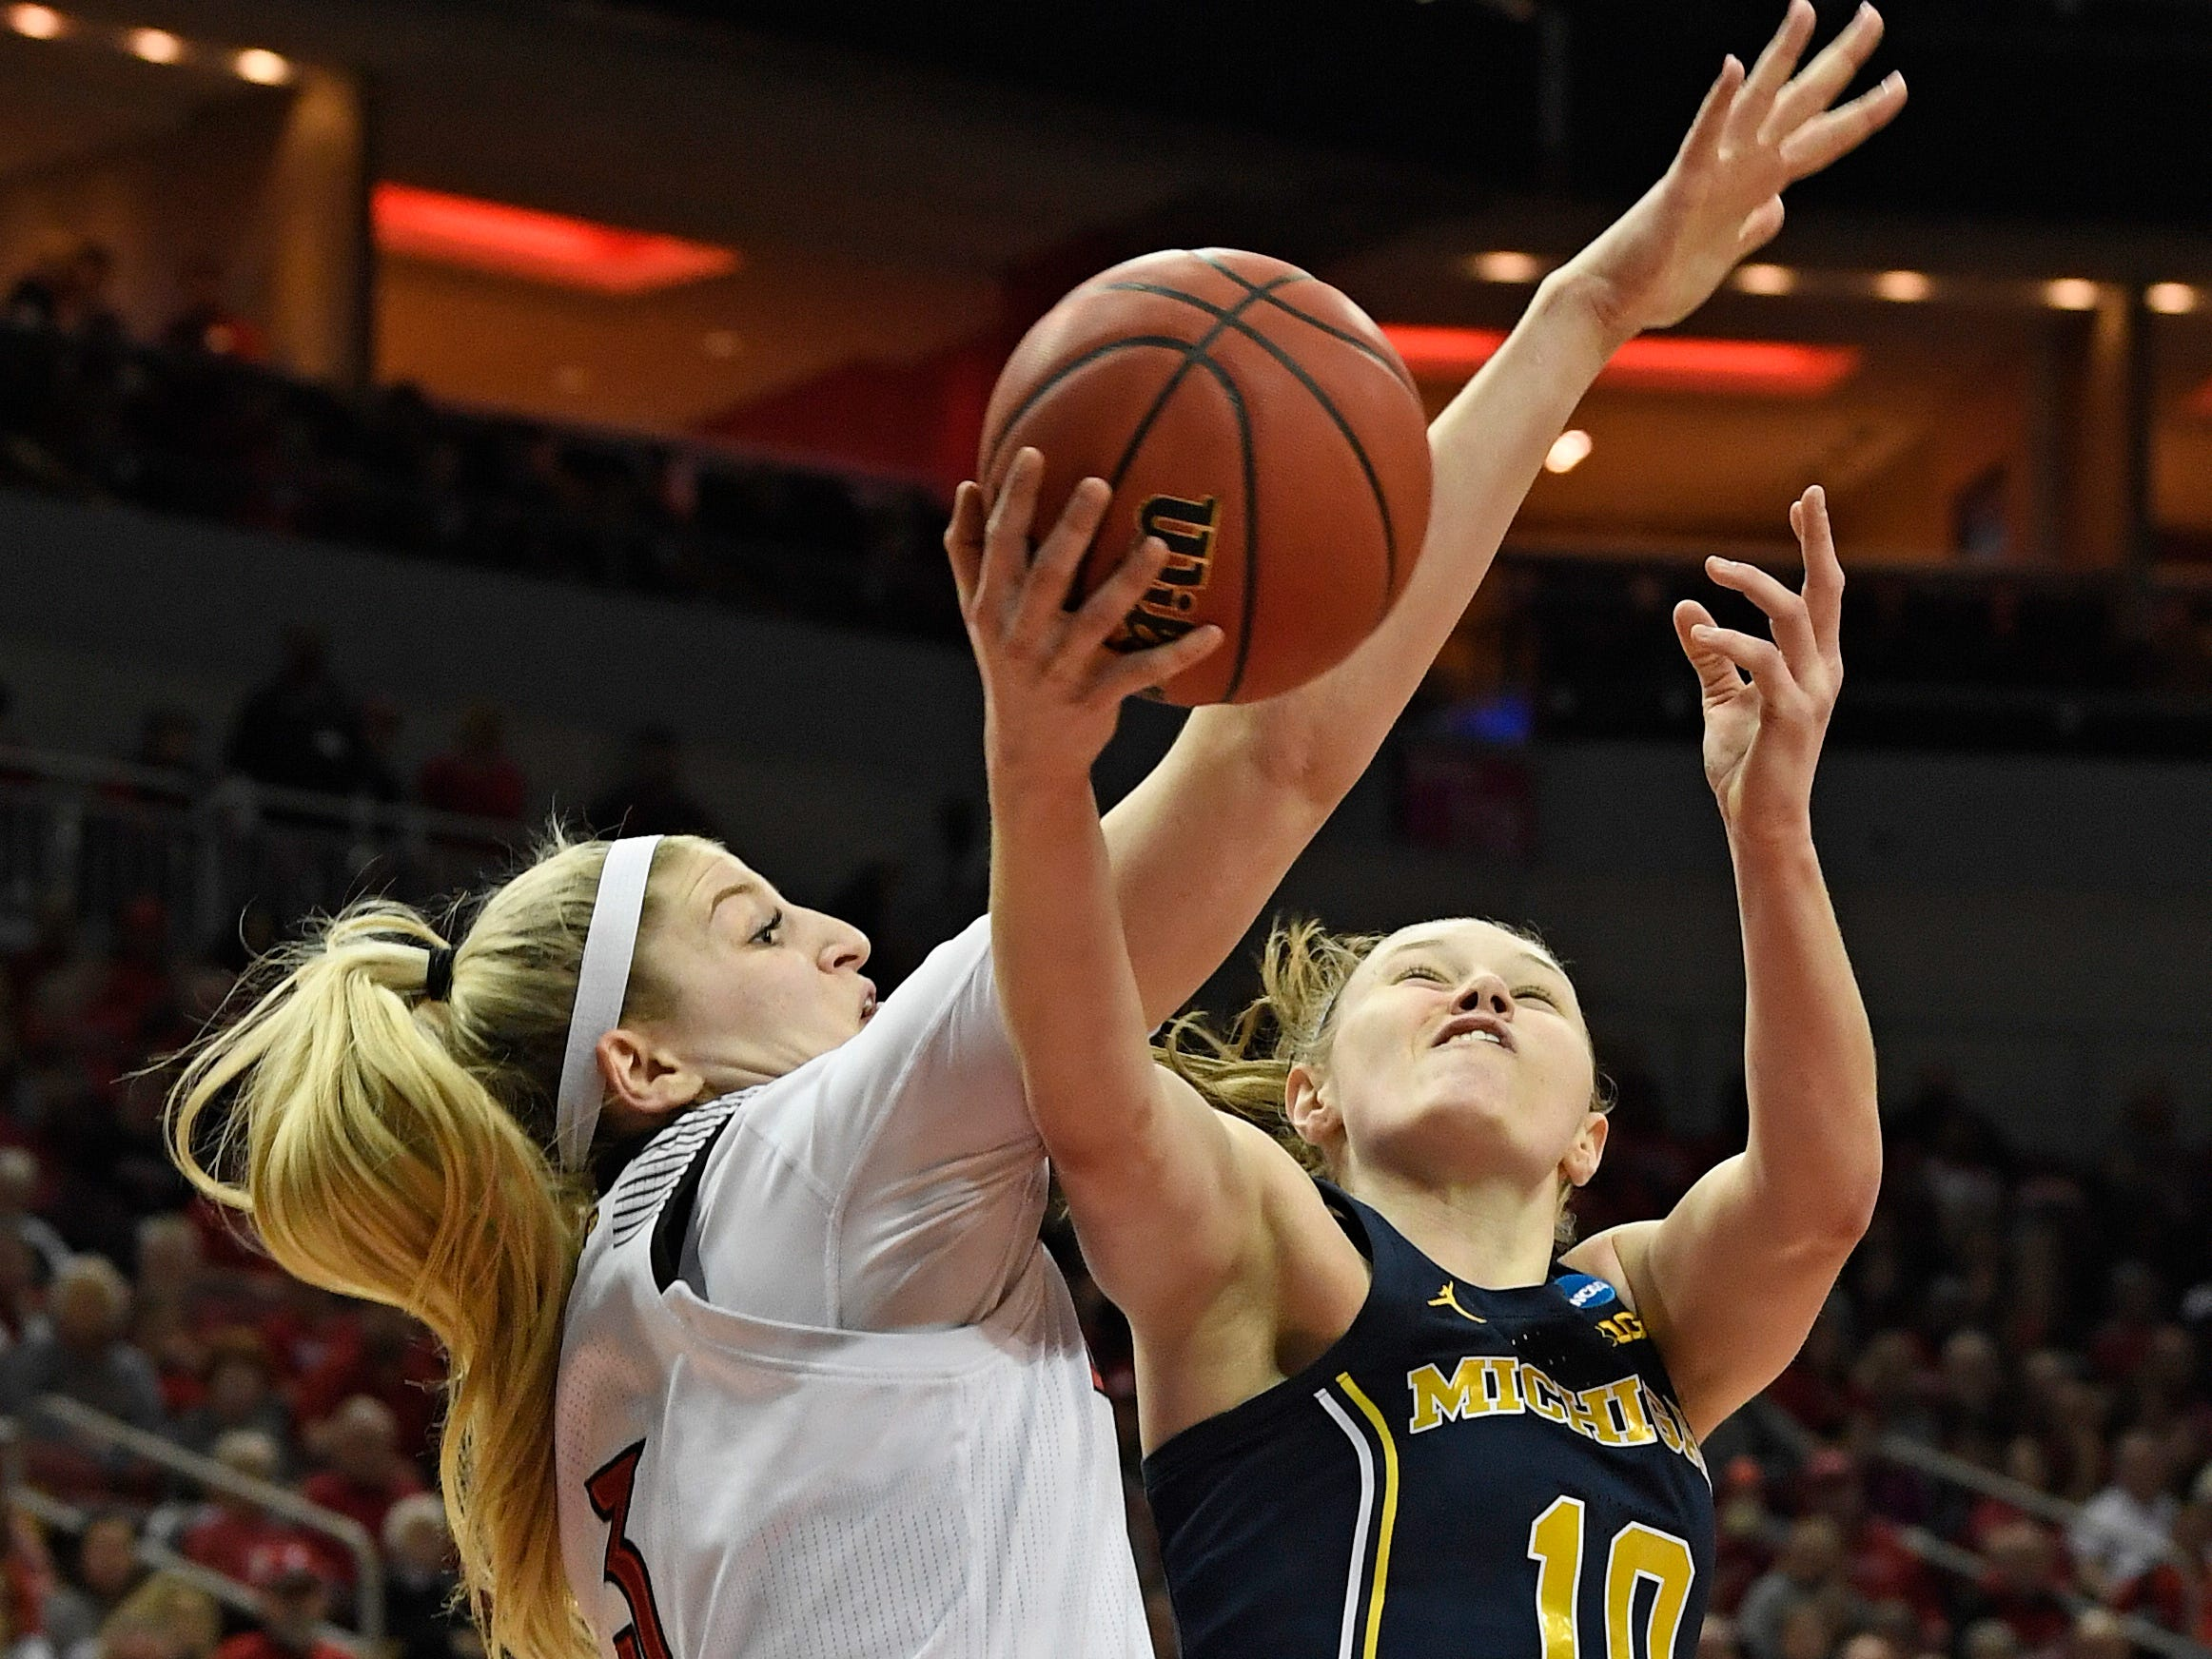 Michigan guard Nicole Munger is fouled by Louisville forward Sam Fuehring.